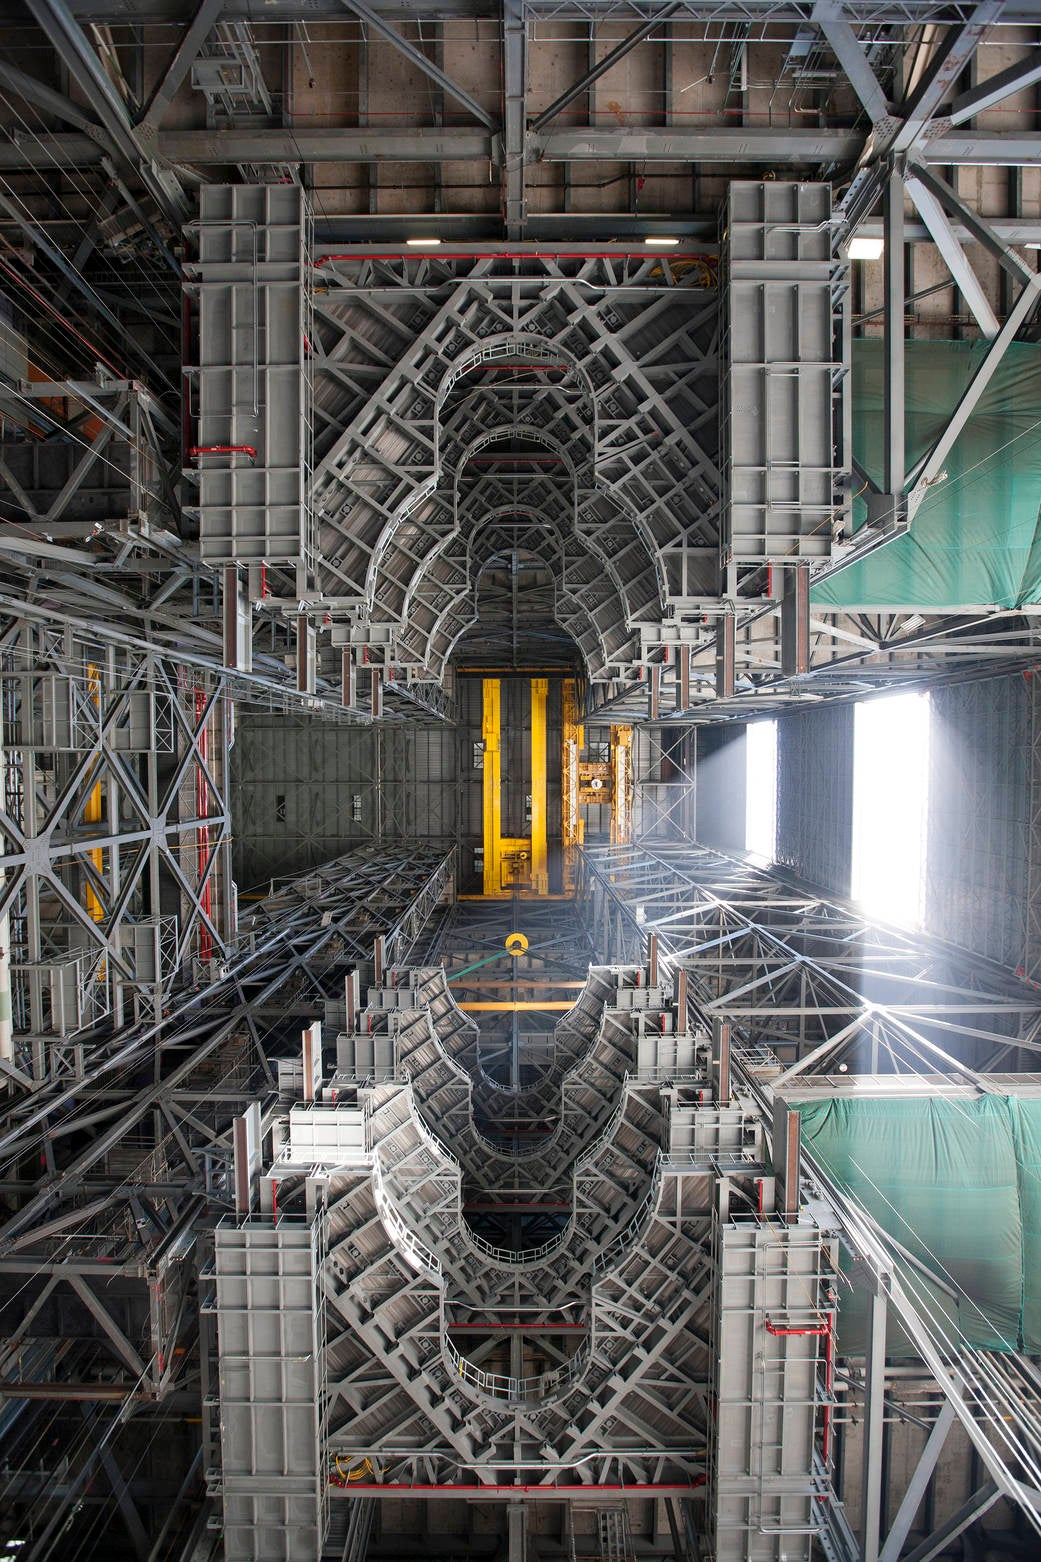 The Dizzying View Inside NASA's Vehicle Assembly Building